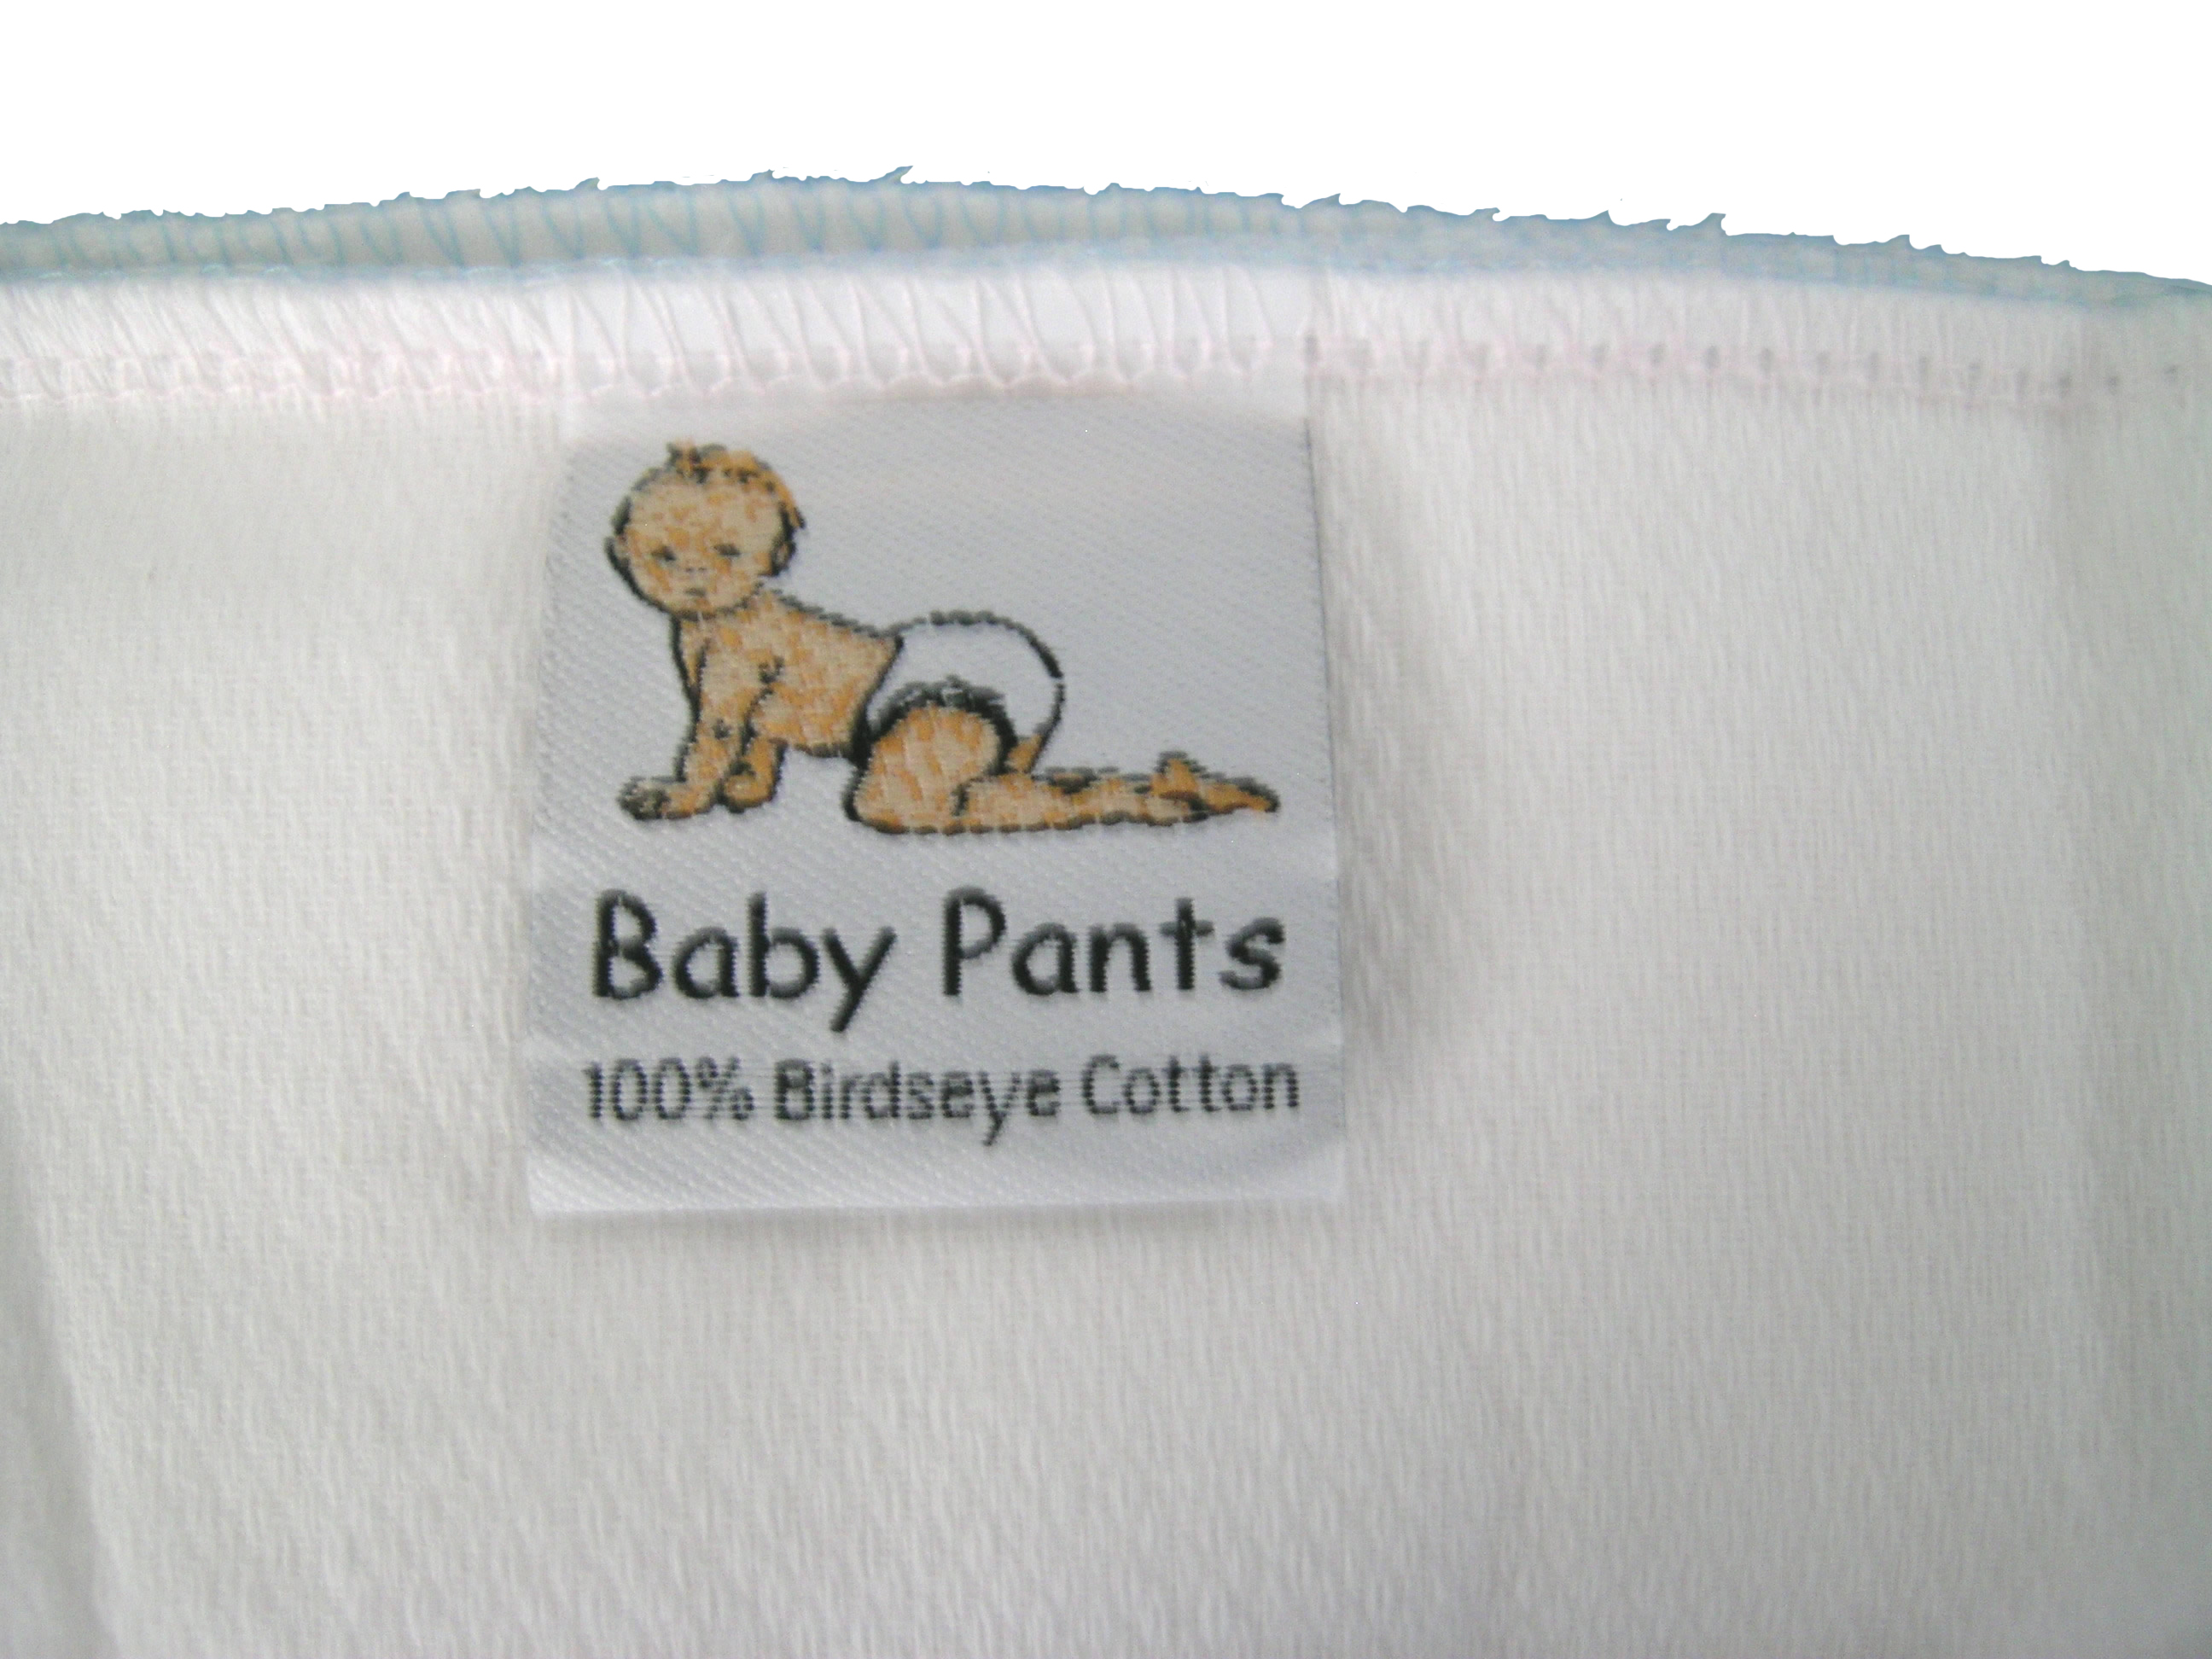 DiaperLabel Fun ways to tell your family you're pregnant